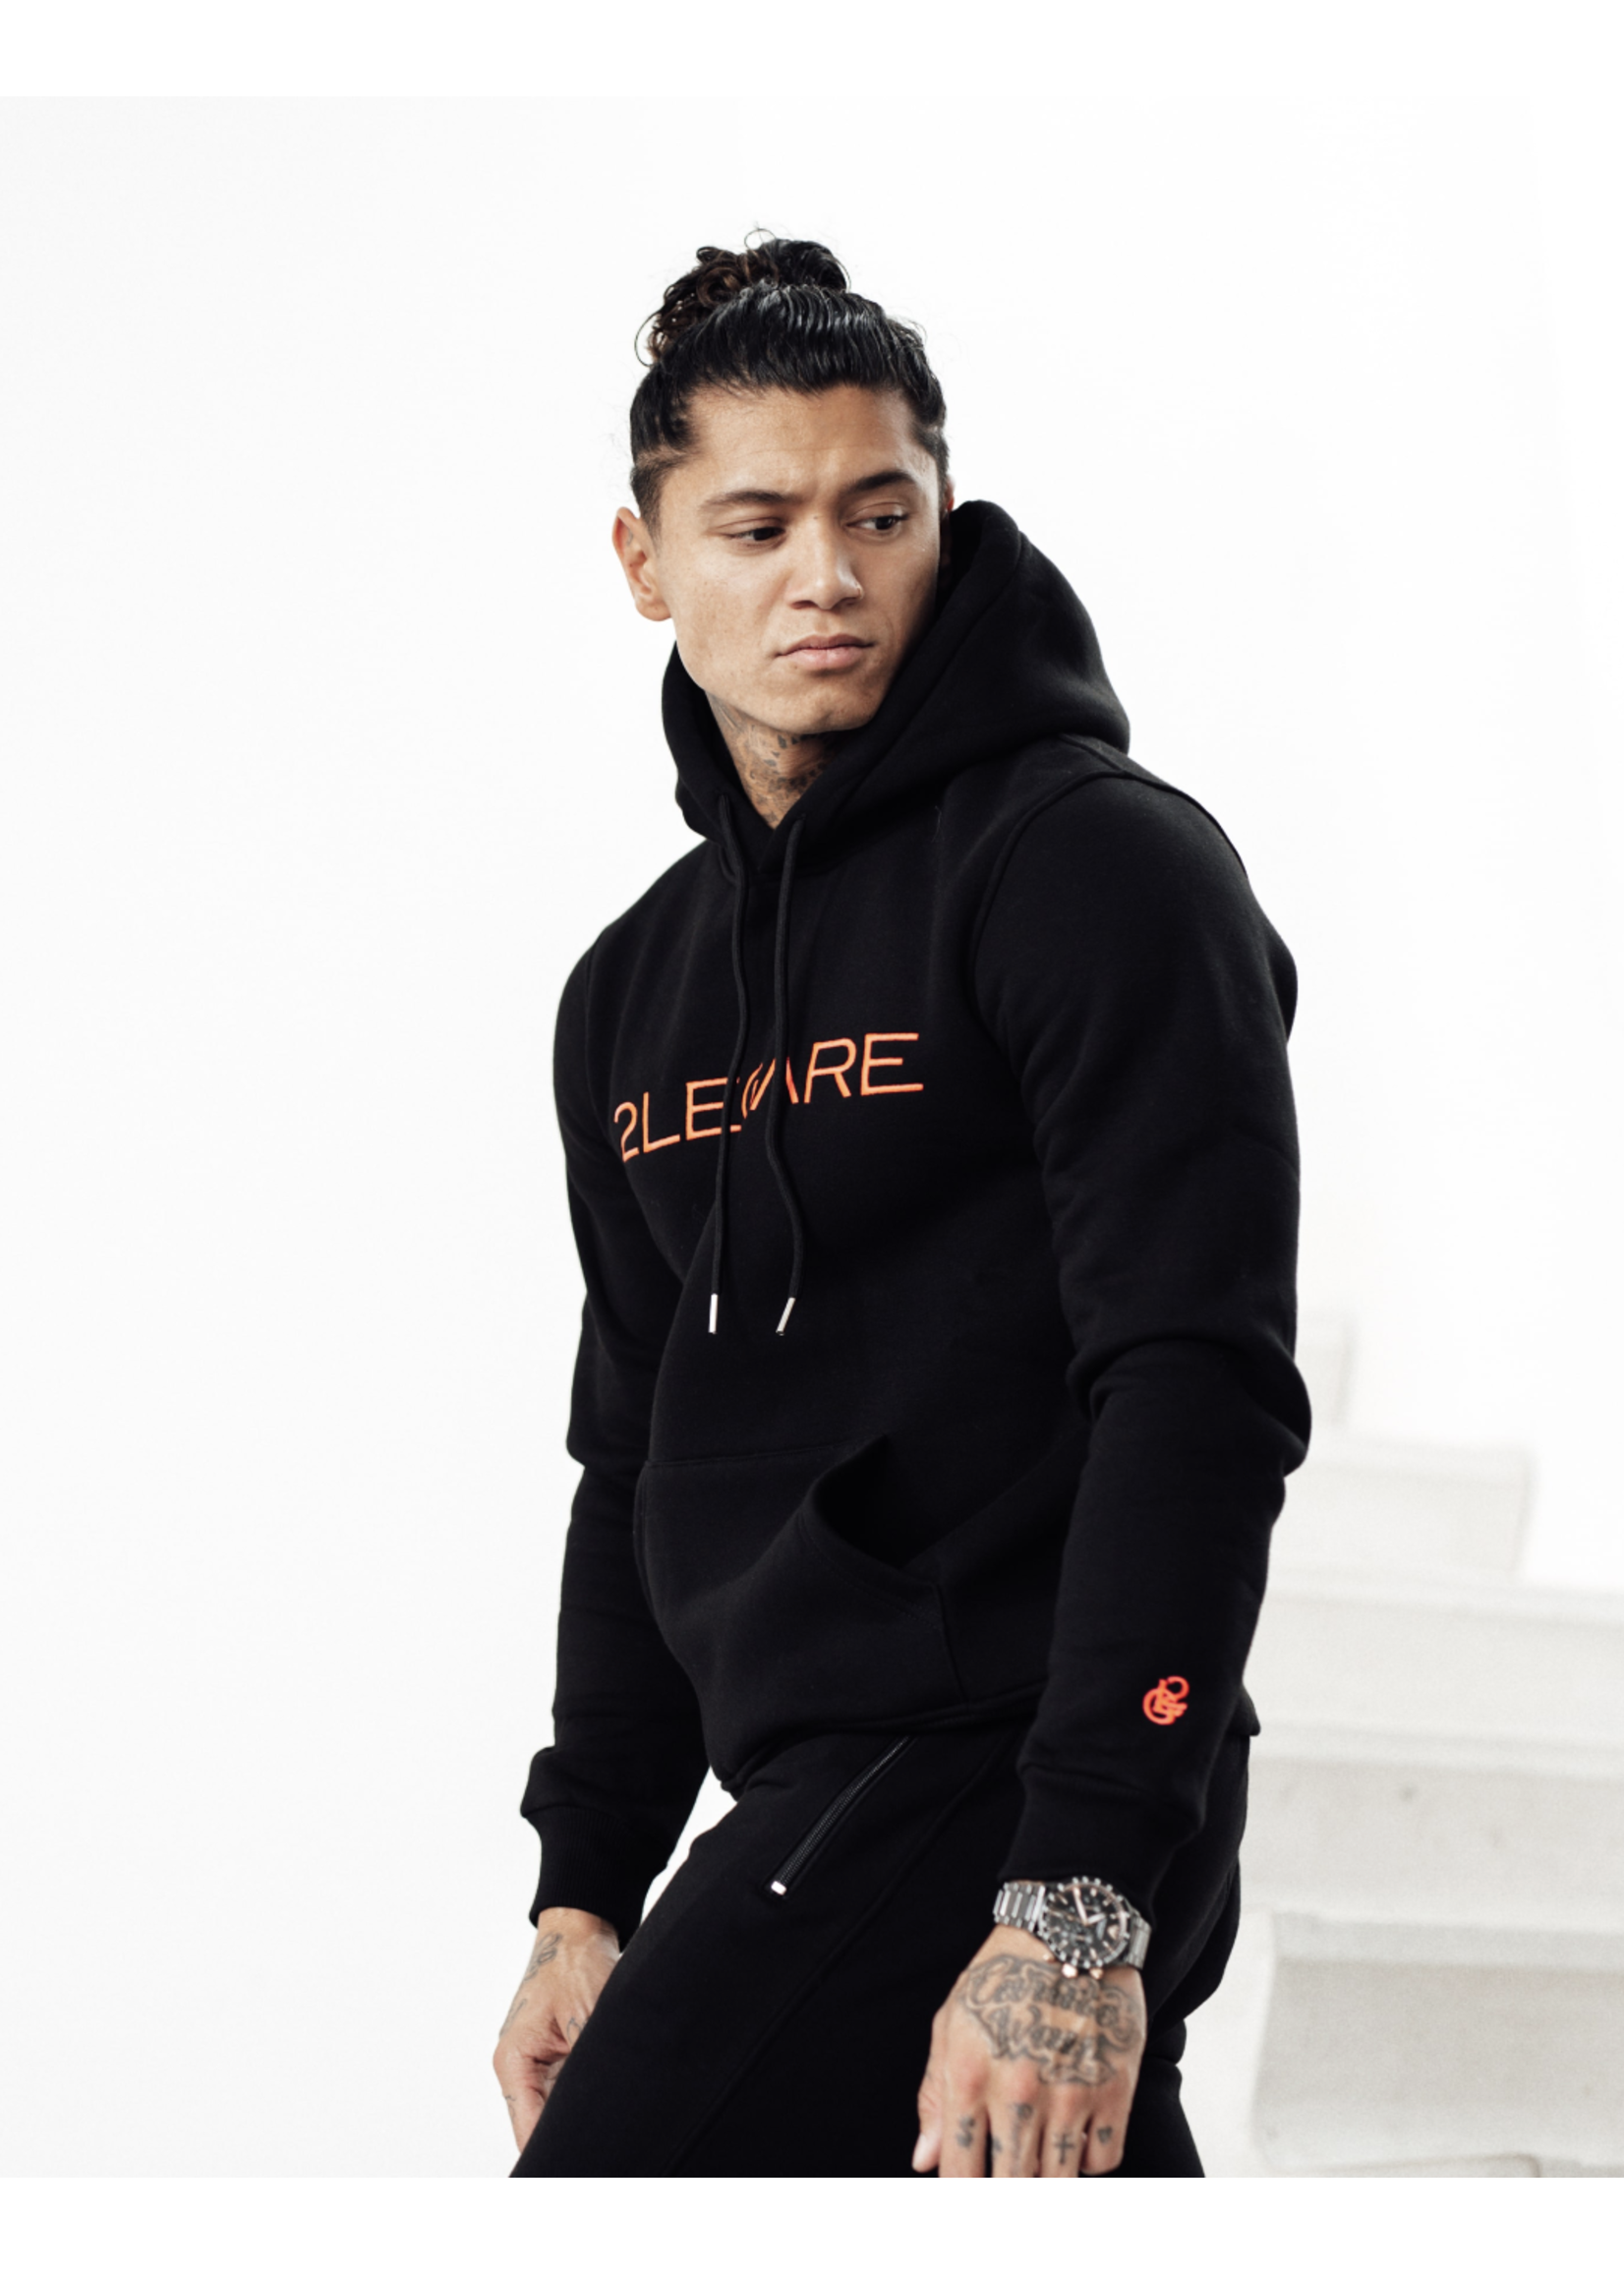 2Legare 2LEGARE Logo Embroidery Hoodie - Black/Neon Pink